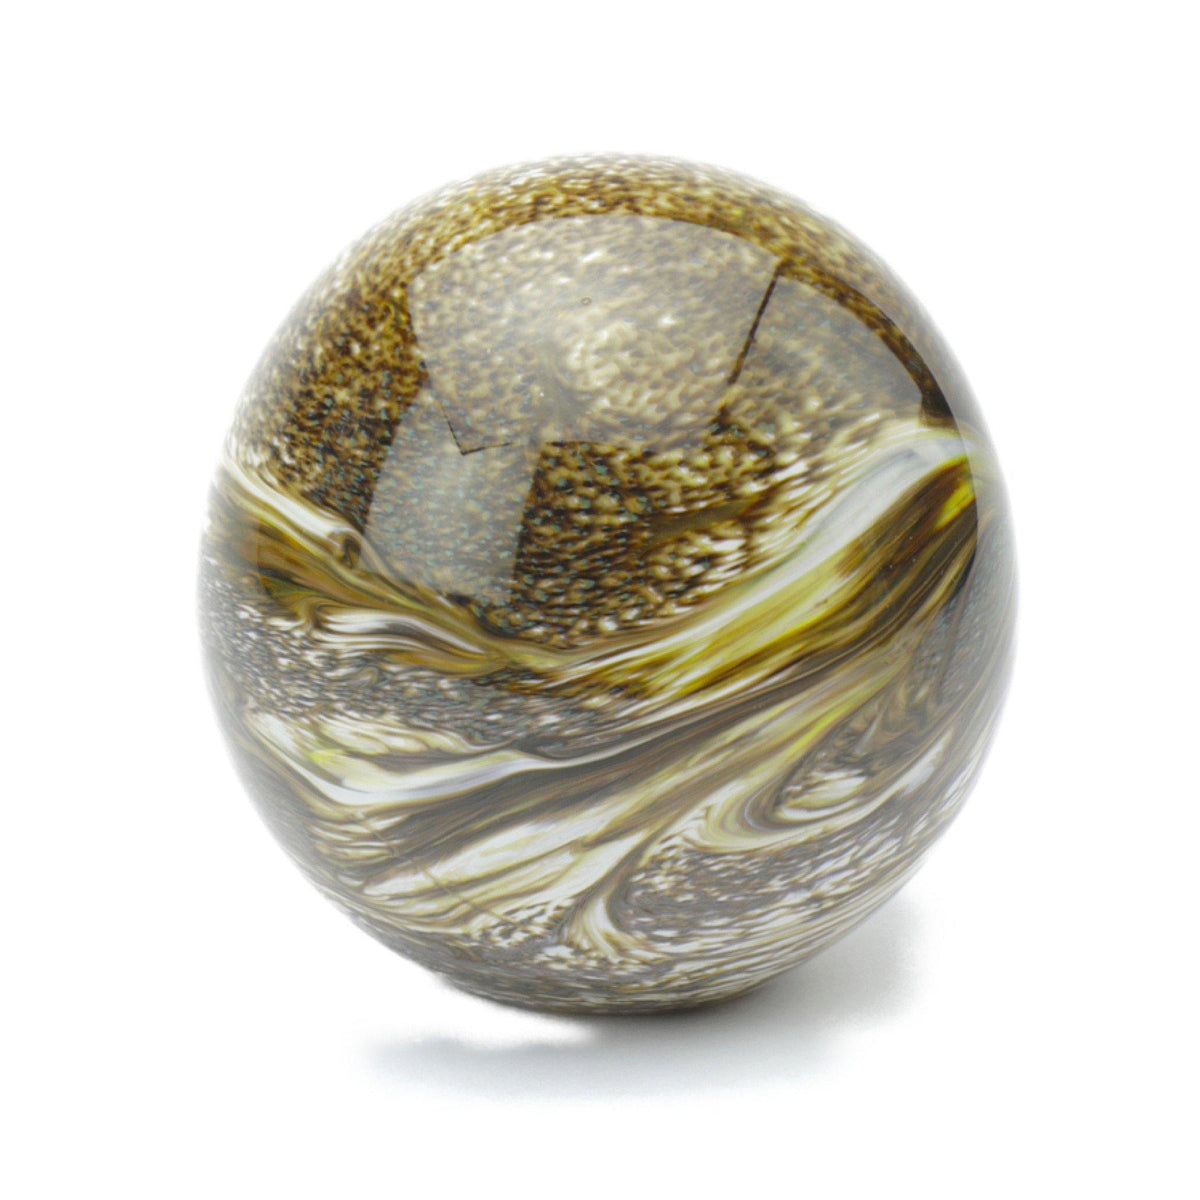 Malton Marble Brown Glass Cremation Ashes Urn - Urns UK